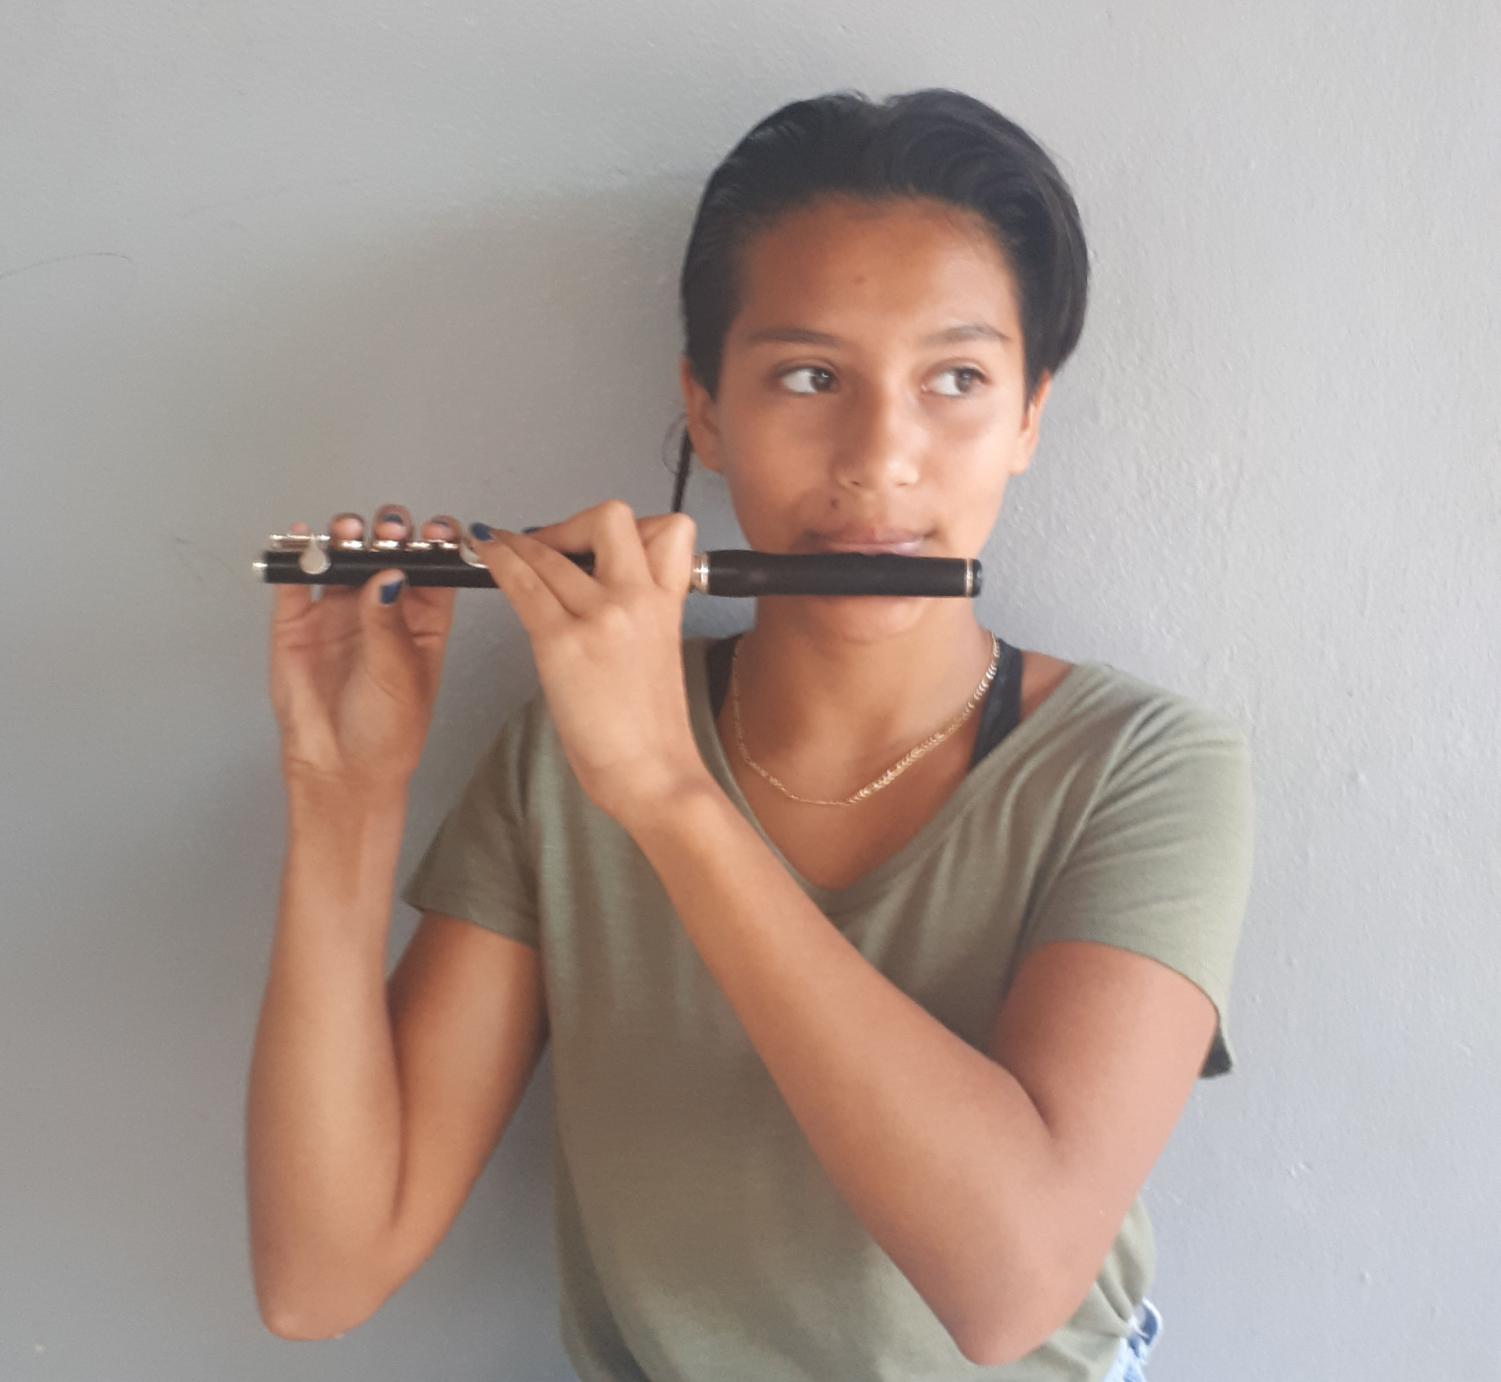 Emma shows off her piccolo skills to the camera in front of the band room.